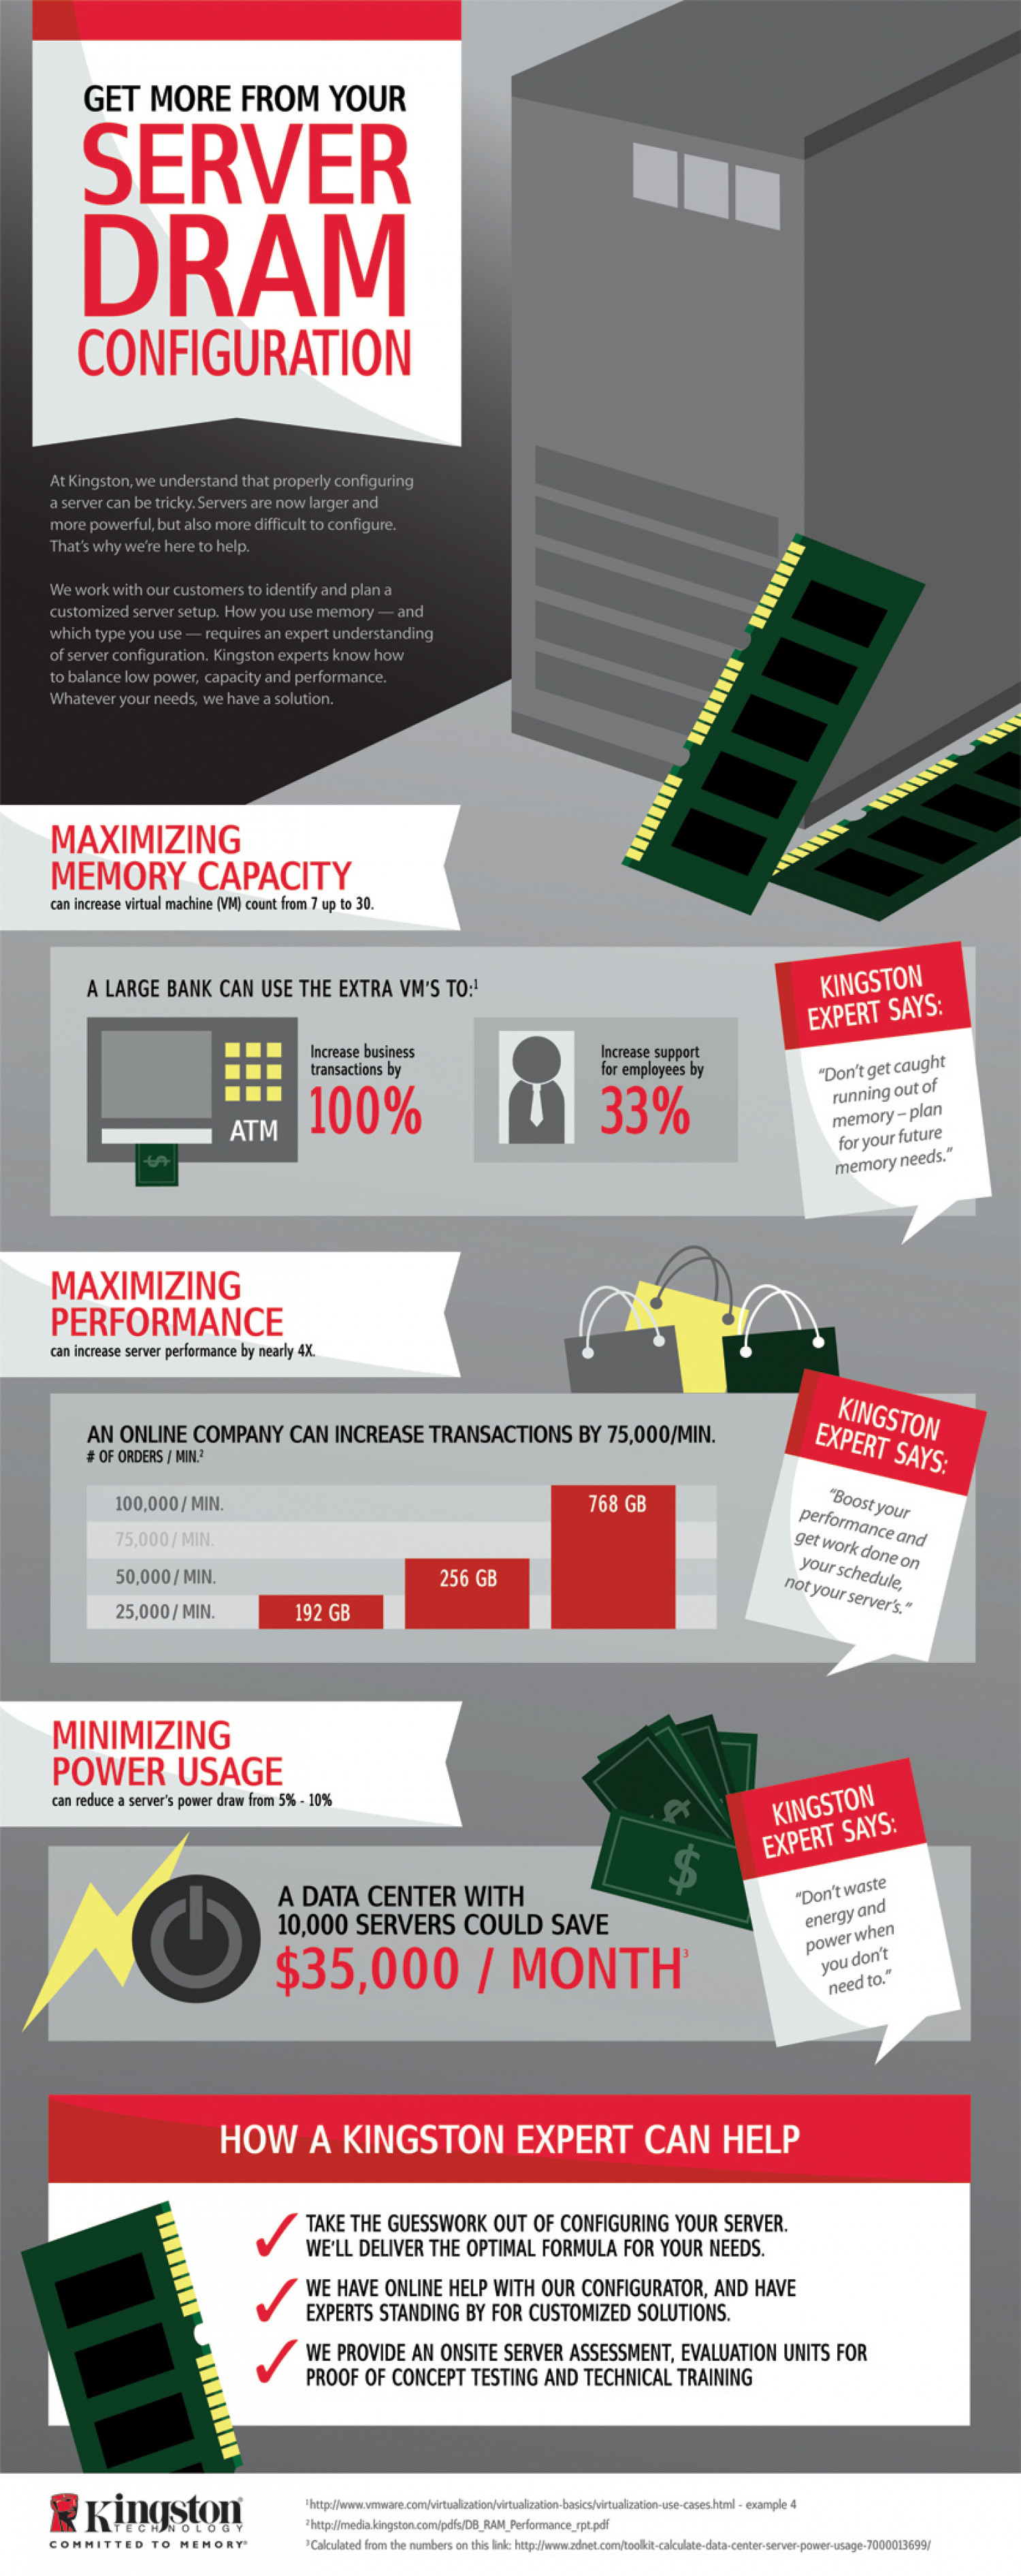 Kingston Expert says: Get more from your server dram configuration  Infographic